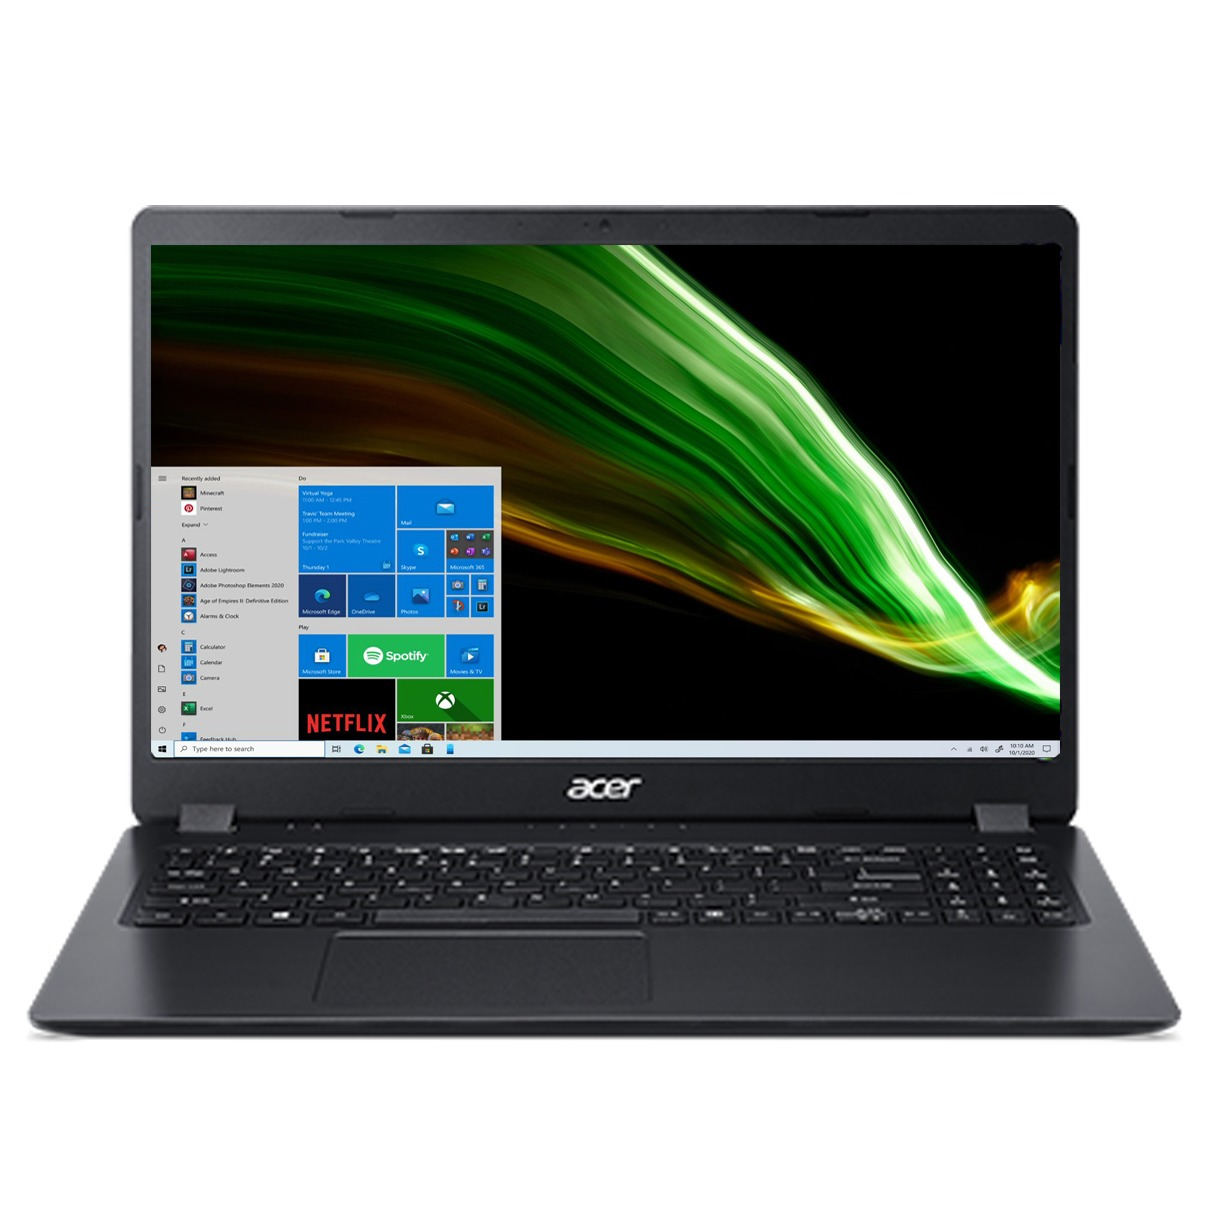 Acer Aspire 3 A315-56-395X -15 inch Laptop